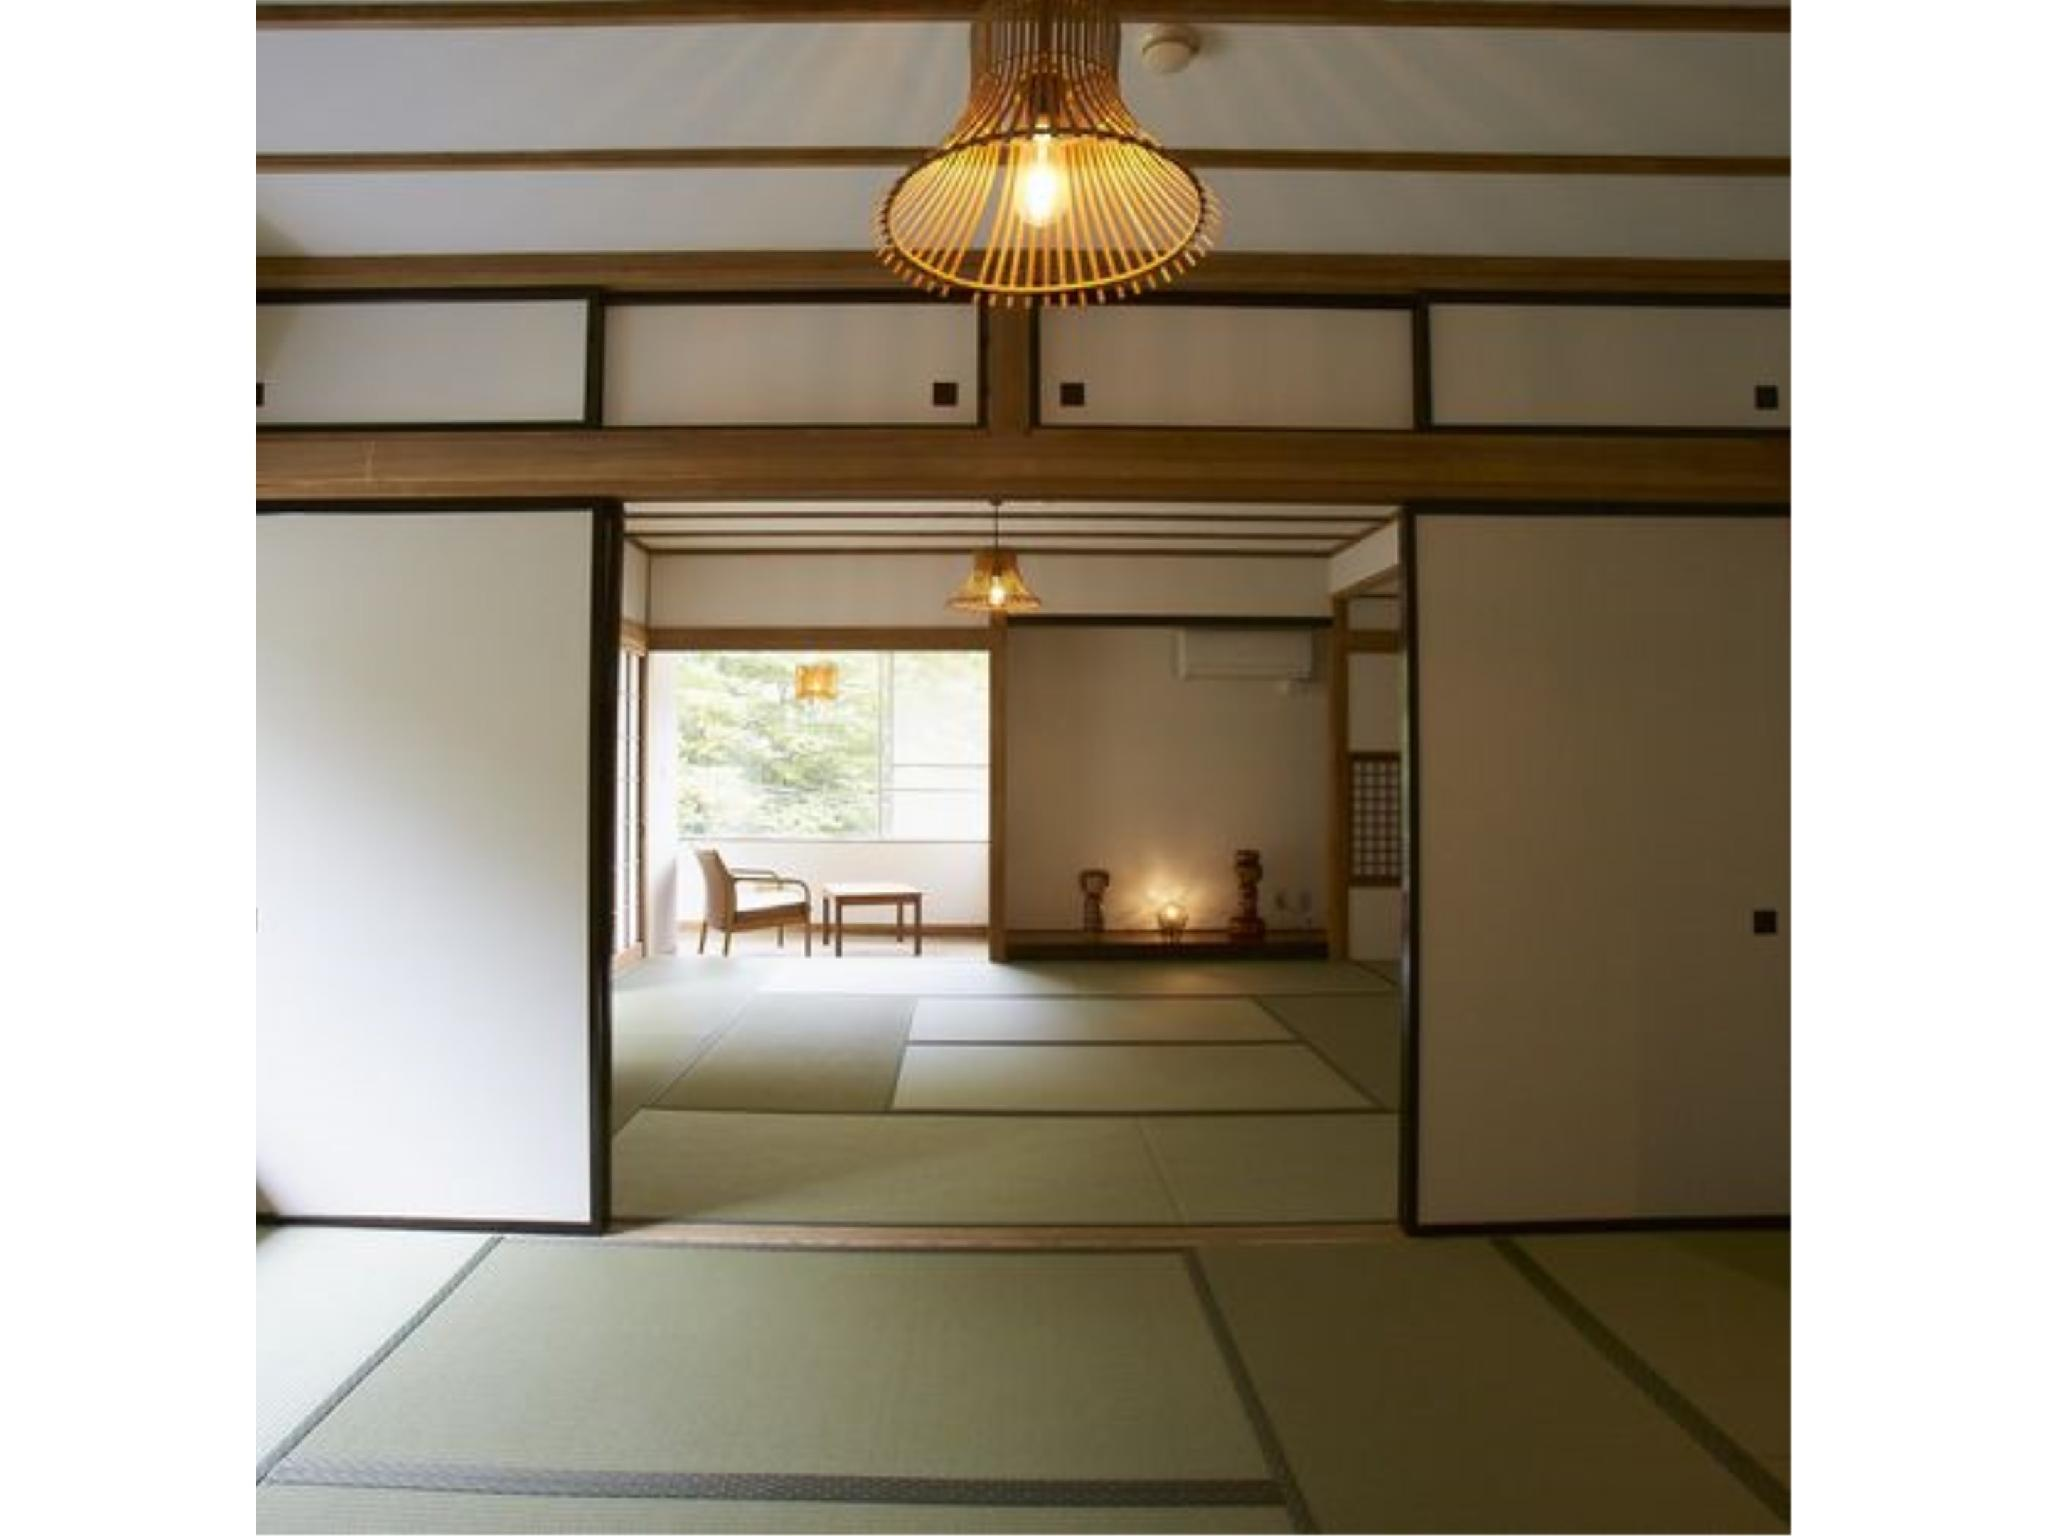 和室グループルーム (Japanese-style Group Room)